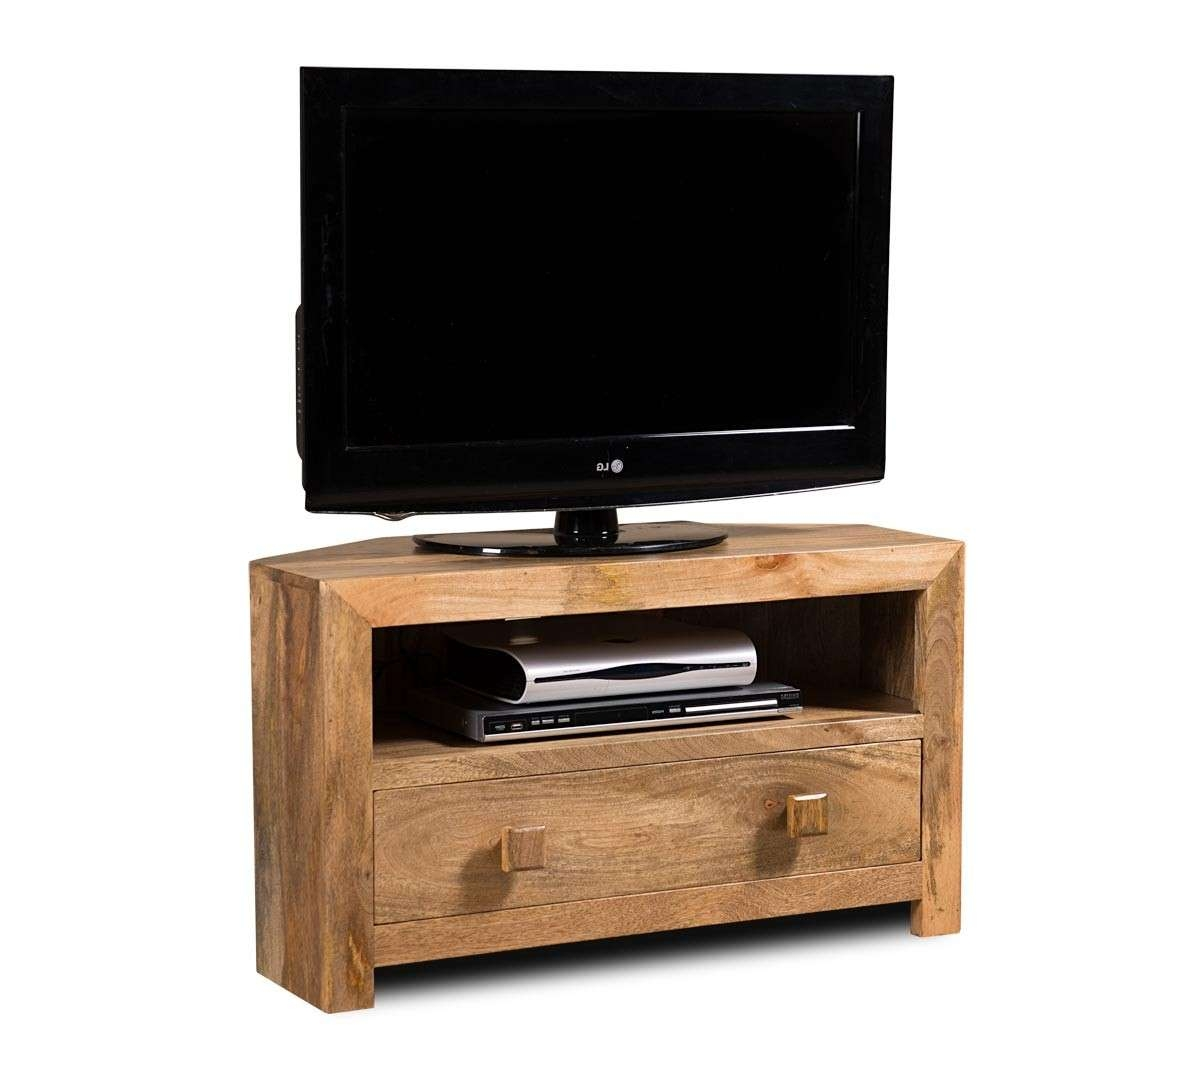 Dakota Light Mango Small Corner Tv Stand | Casa Bella Furniture Uk Regarding Small Tv Stands (View 5 of 15)